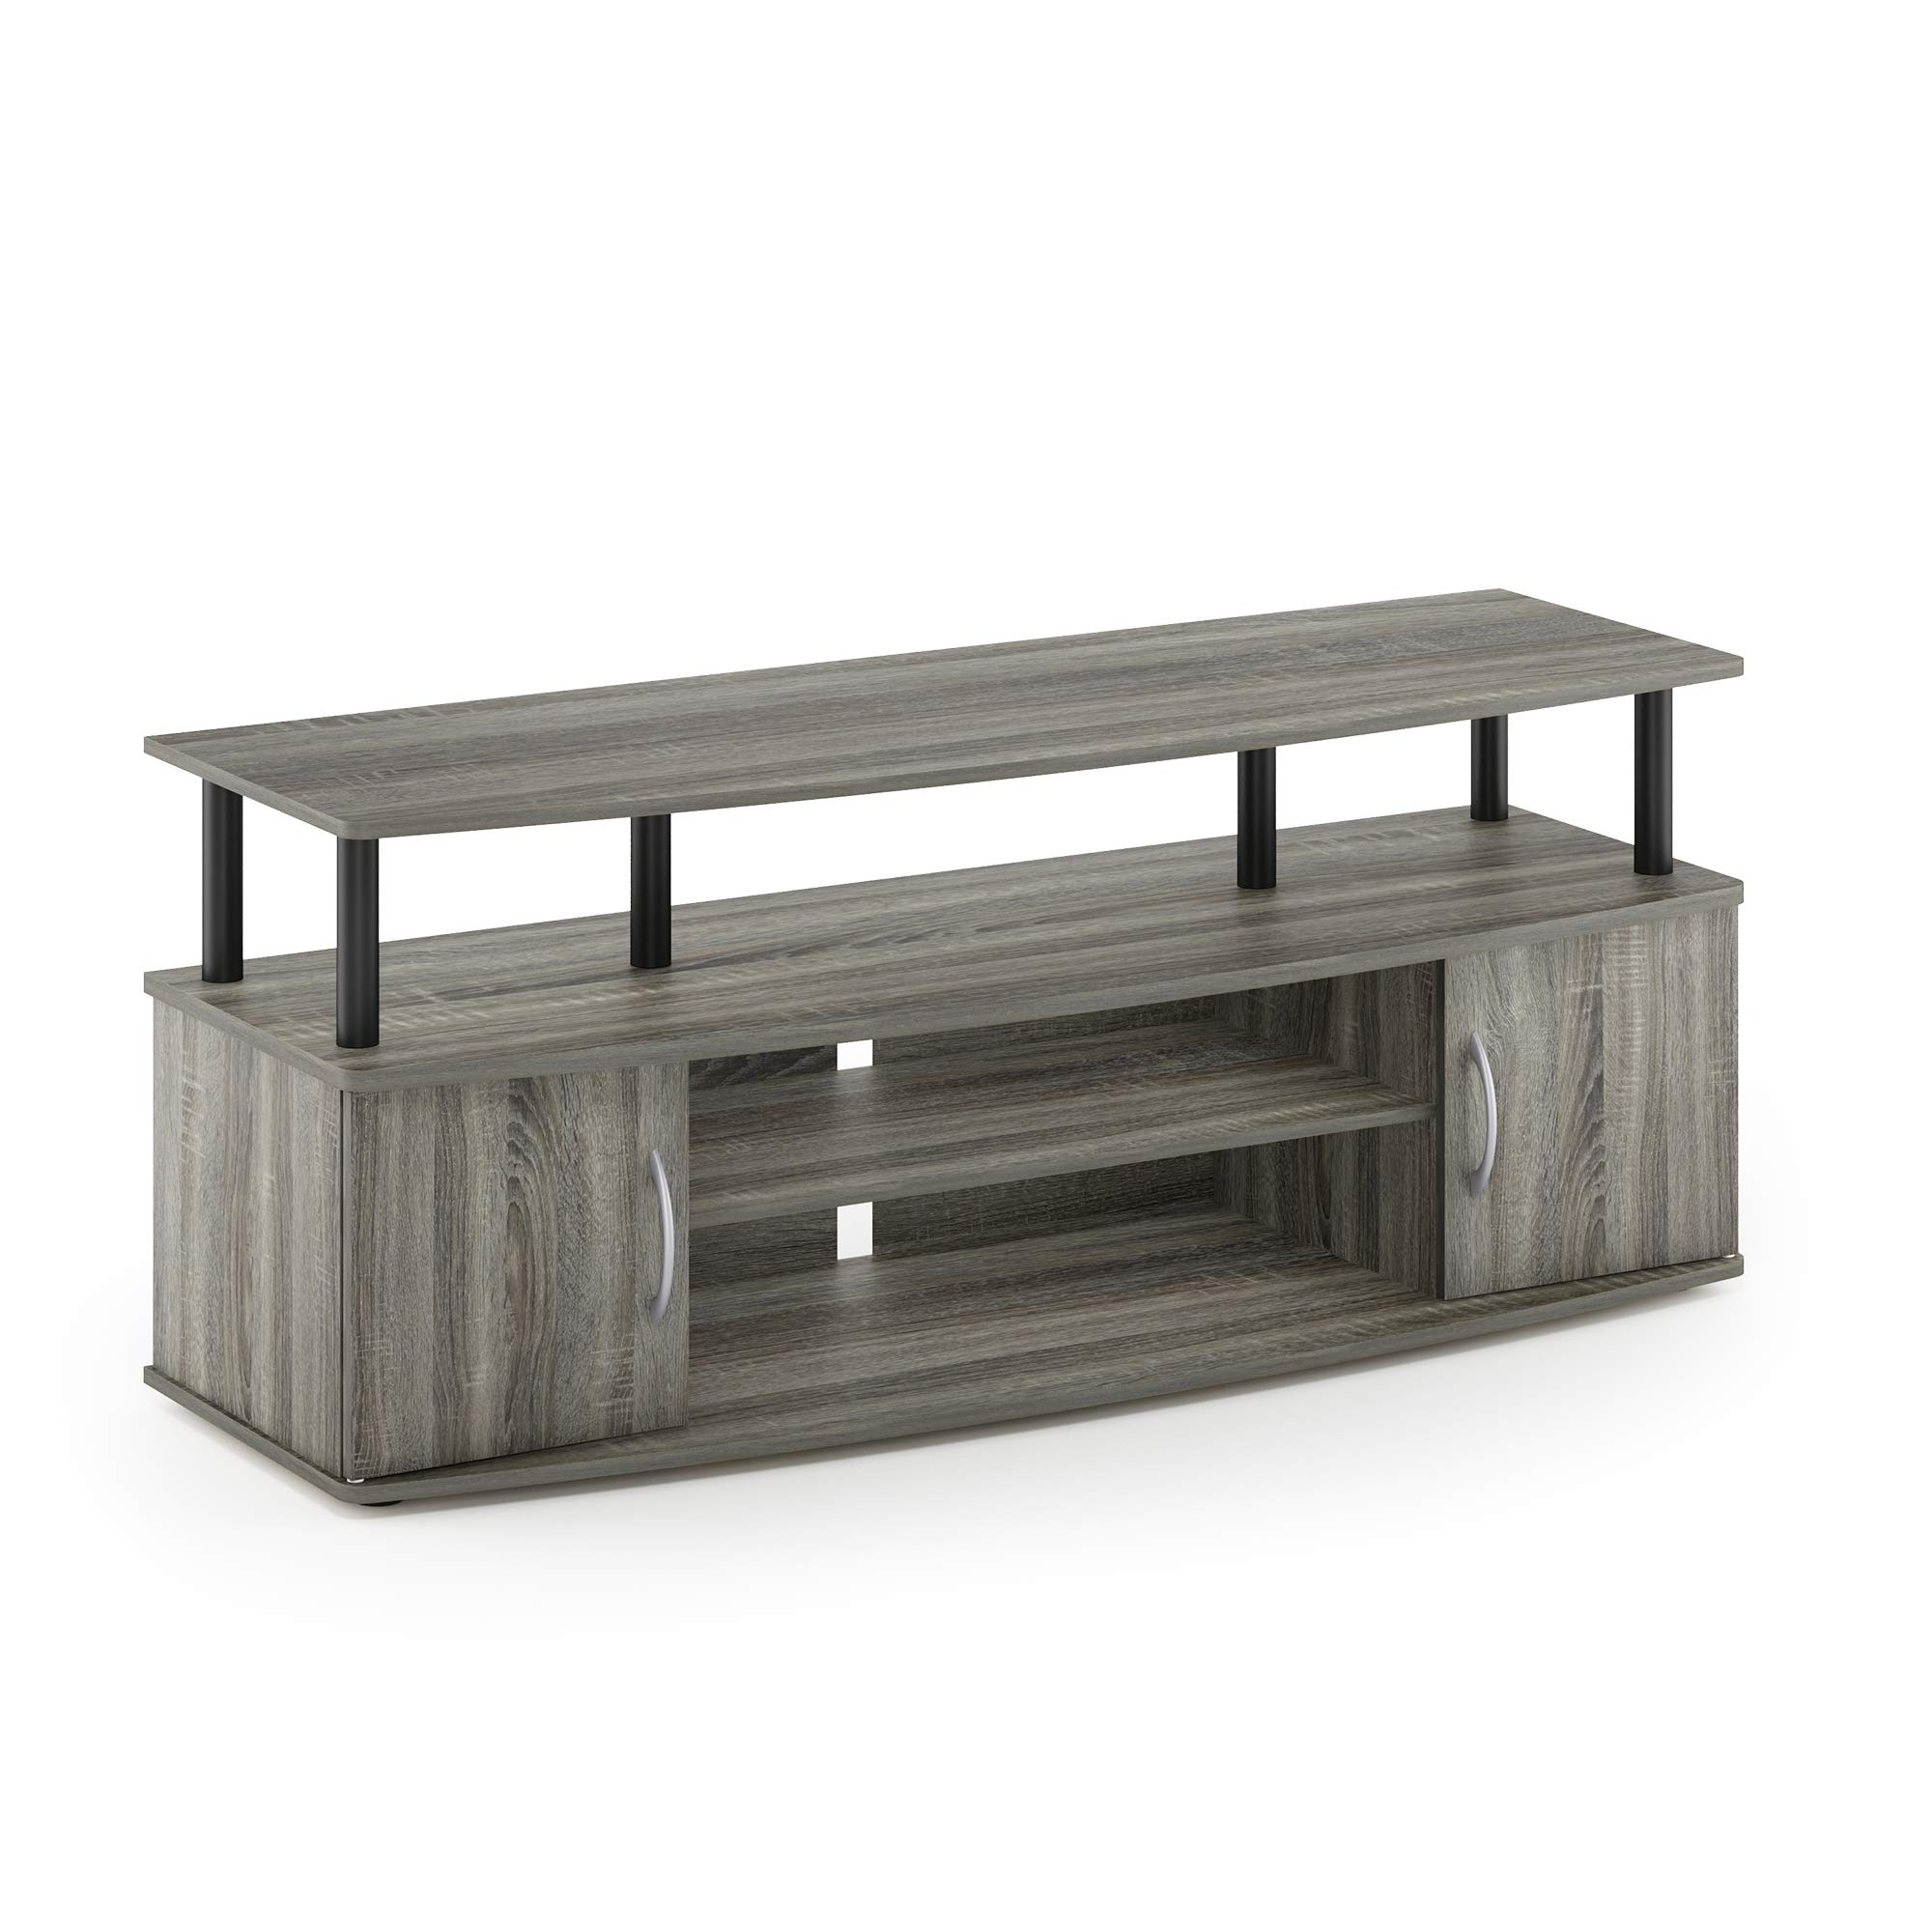 Furinno 15113GYW/BK Jaya Large Entertainment Stand for TV Up to 50 Inch, French Oak Grey/Black by Furinno